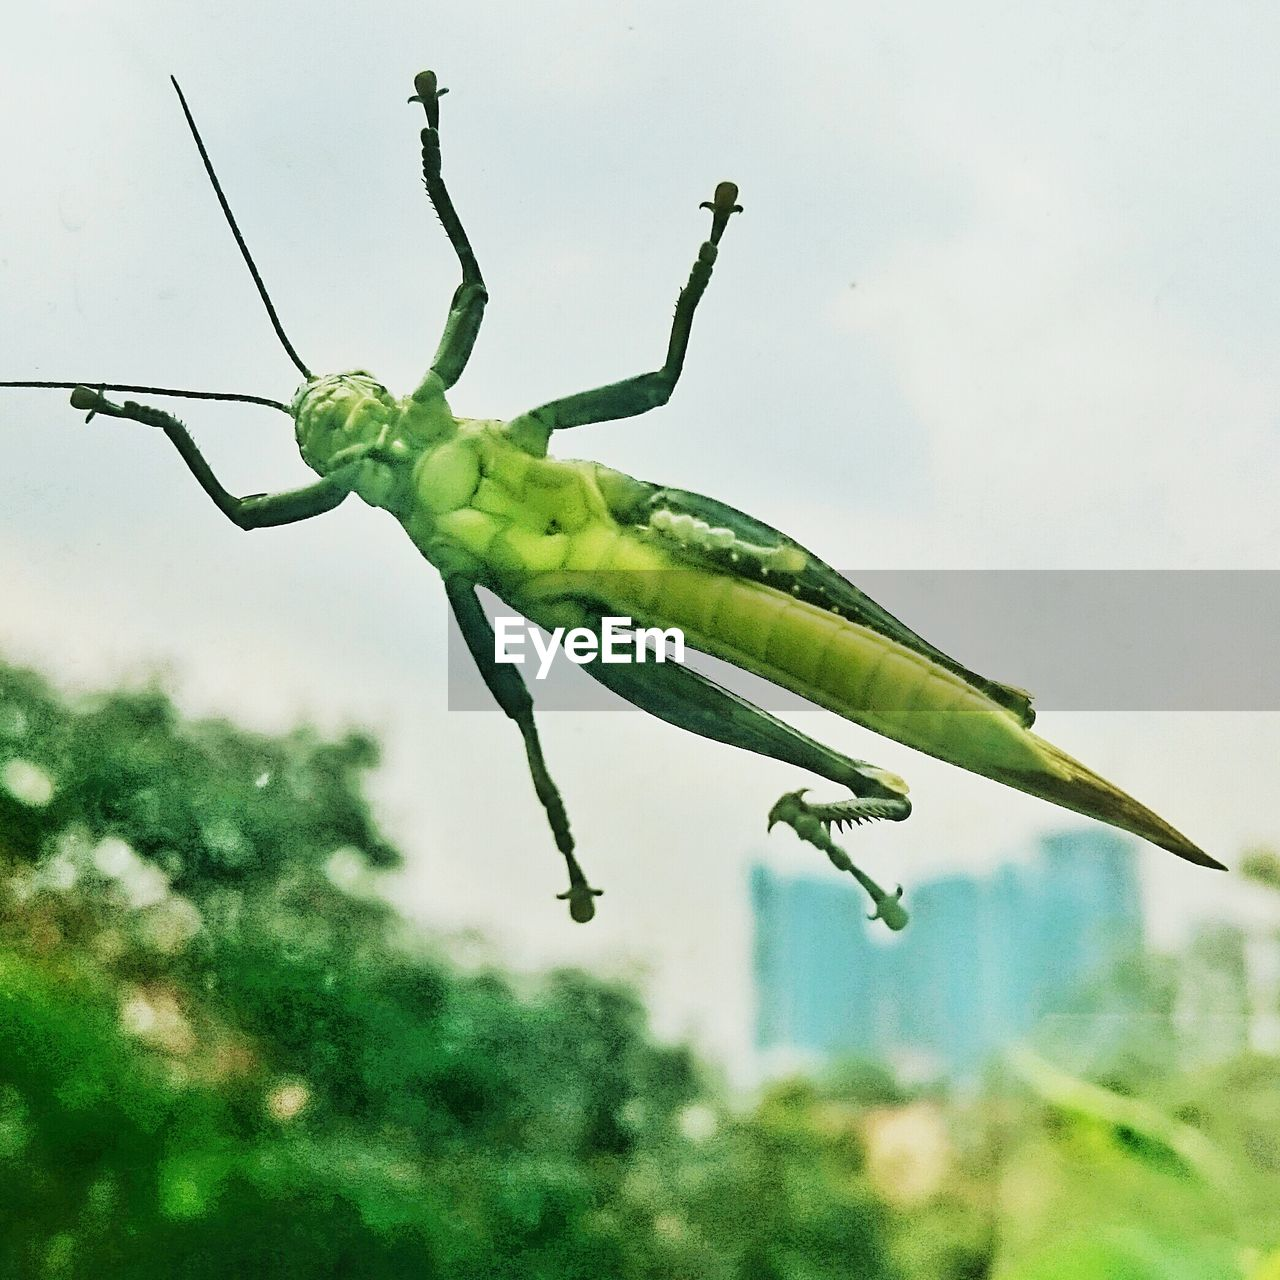 Grasshopper on window